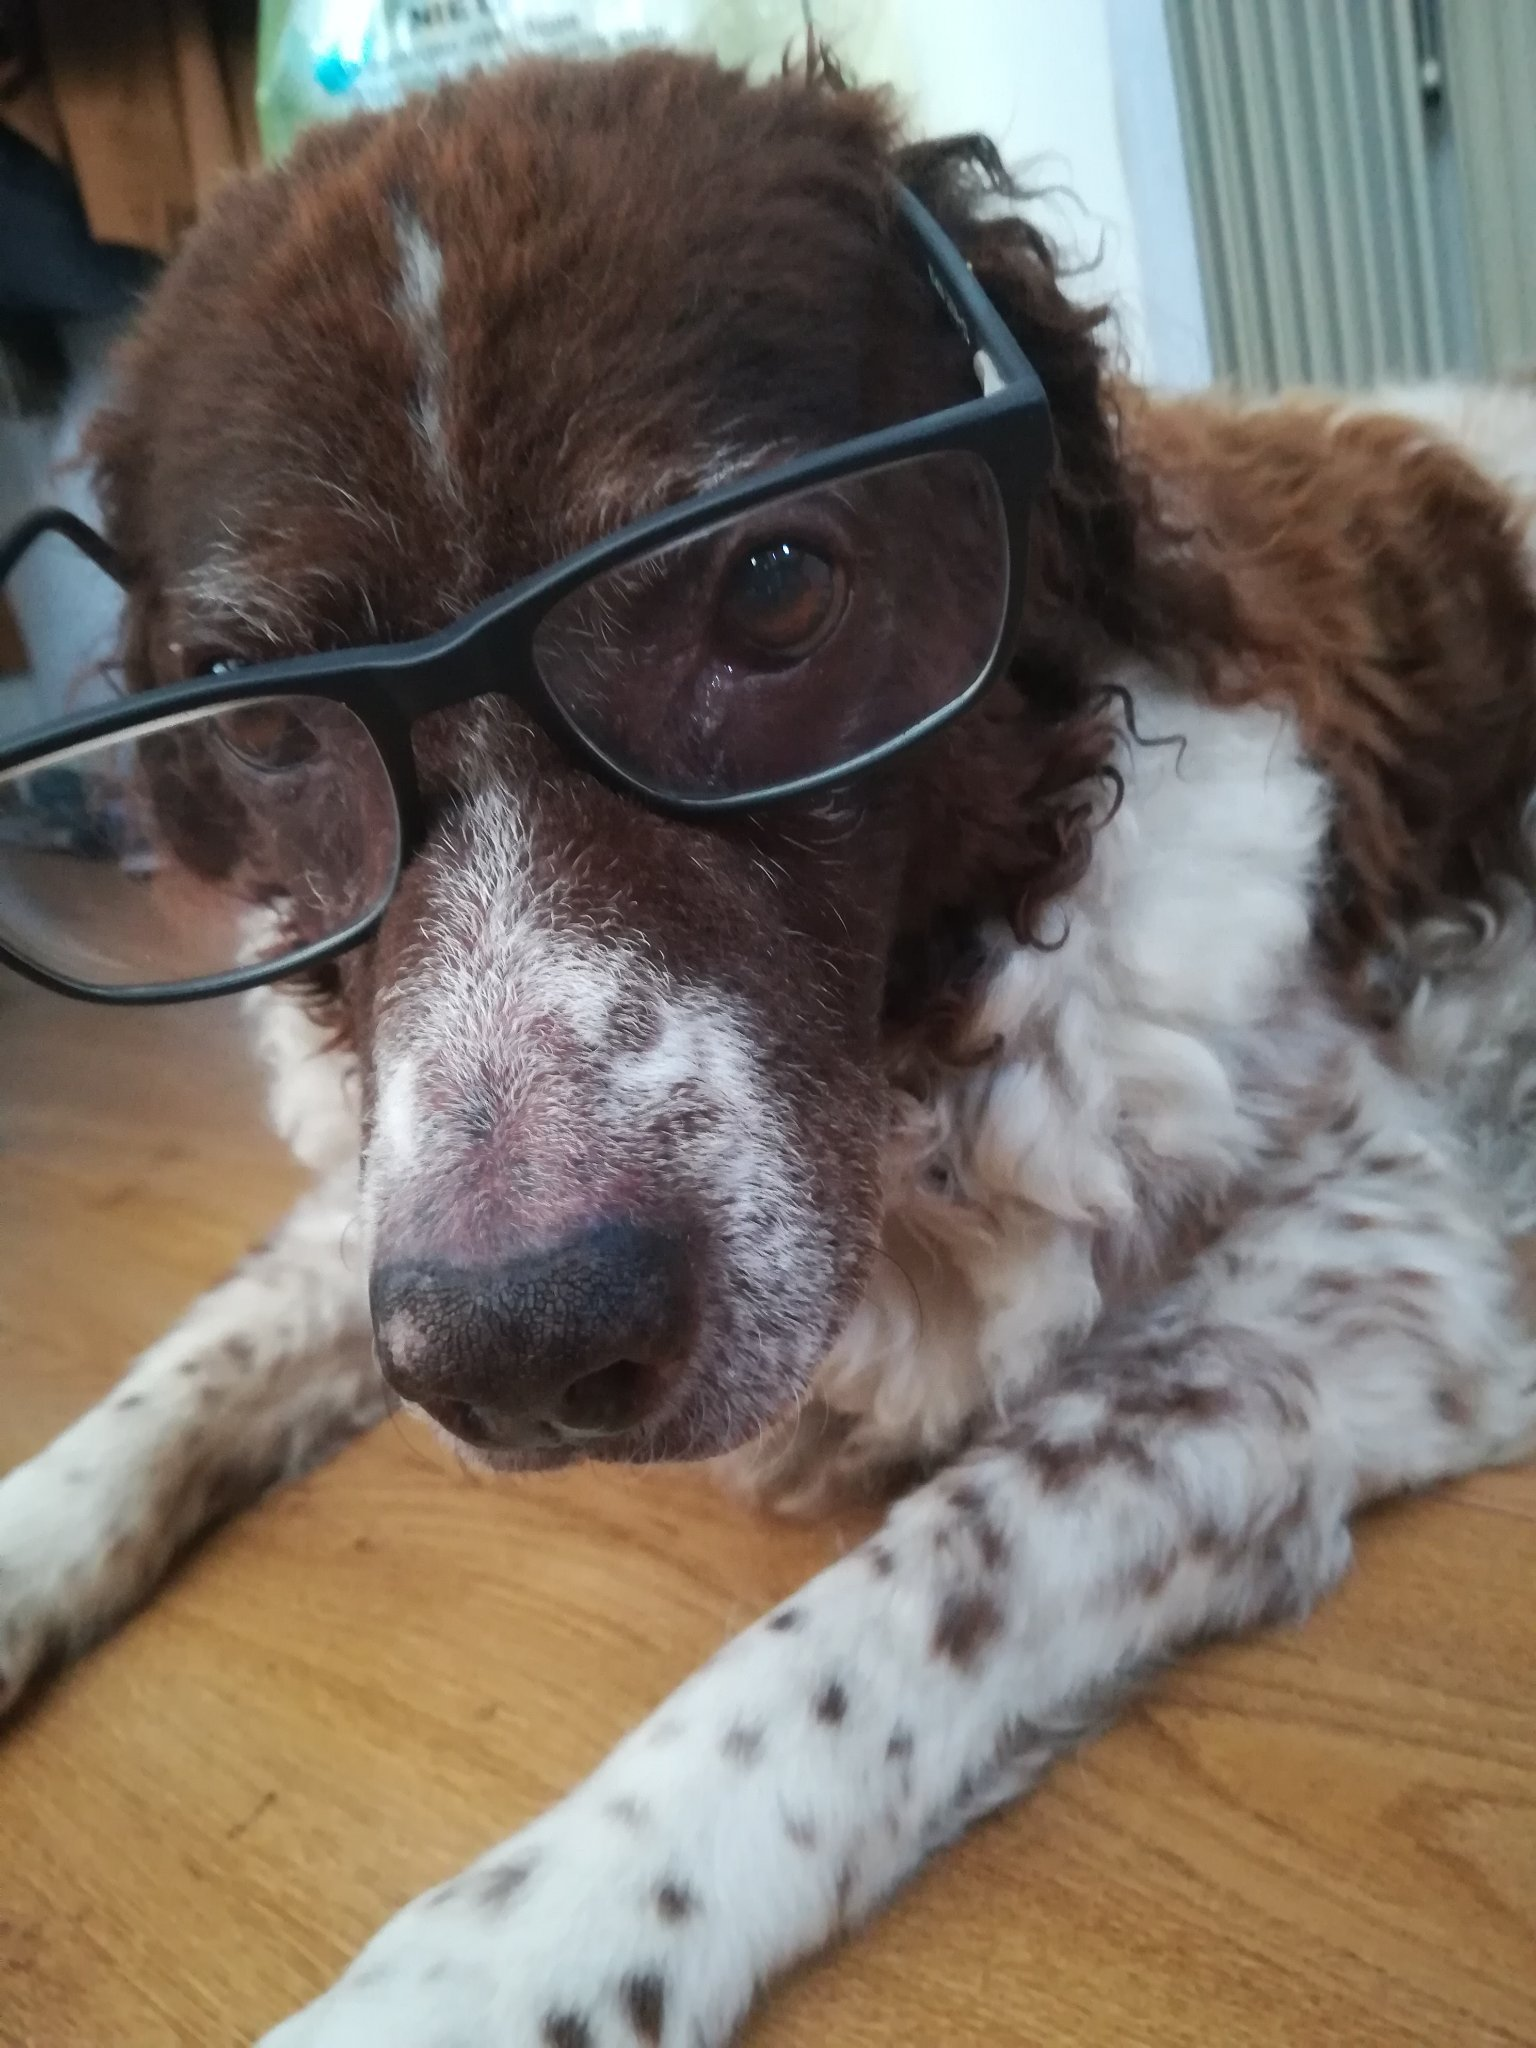 Have a picture of an old doggo with glasses - meme